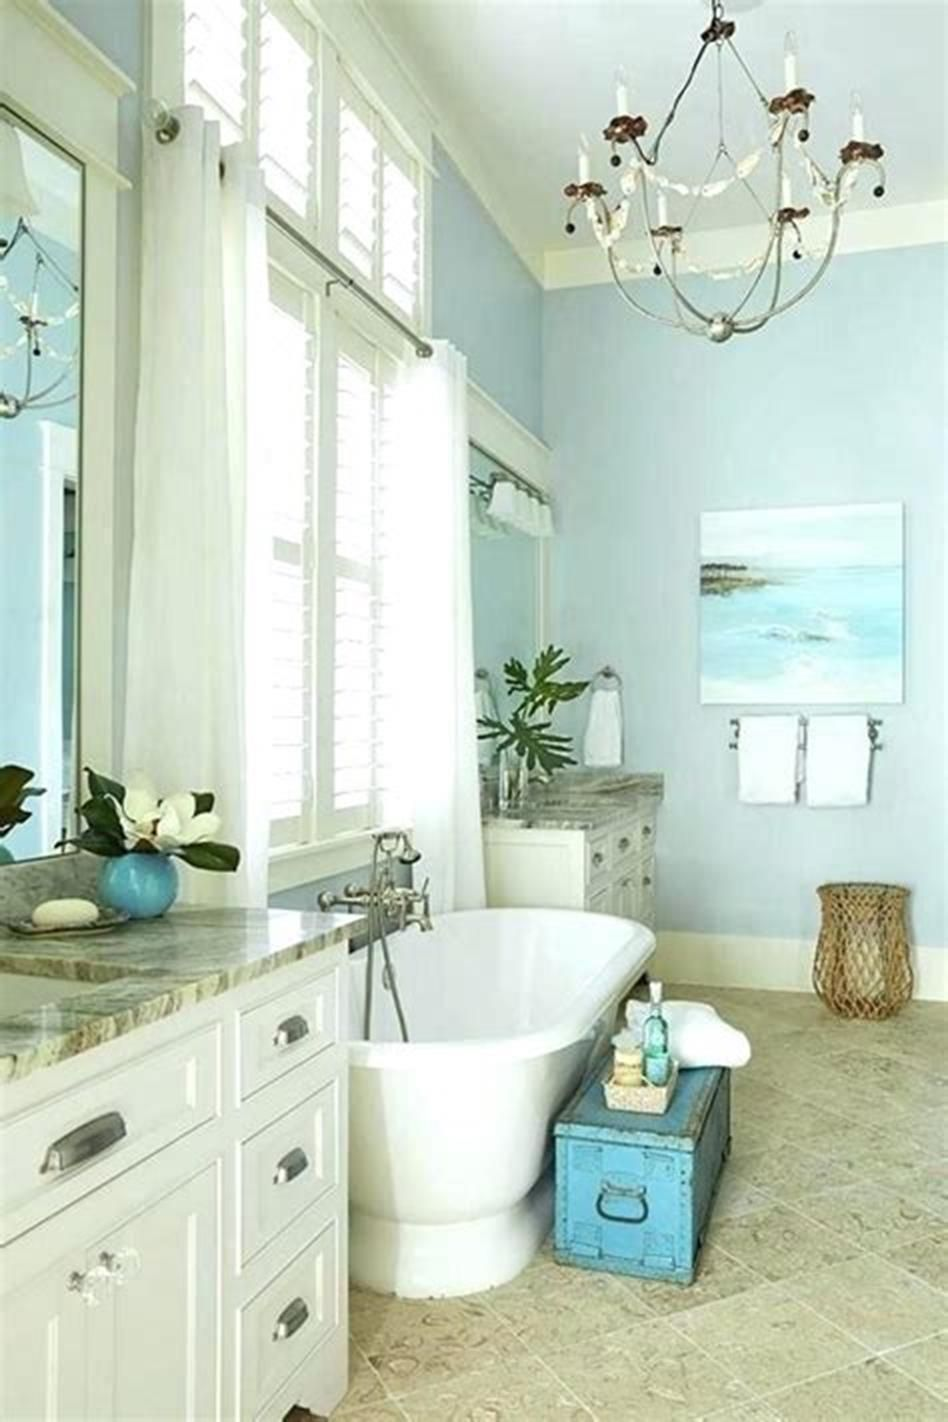 50 Amazing Beach Style Bathroom Design And Decor Ideas 35 Craft Home Ideas Coastal Bathroom Decor Beach Bathrooms Beach Bathroom Decor